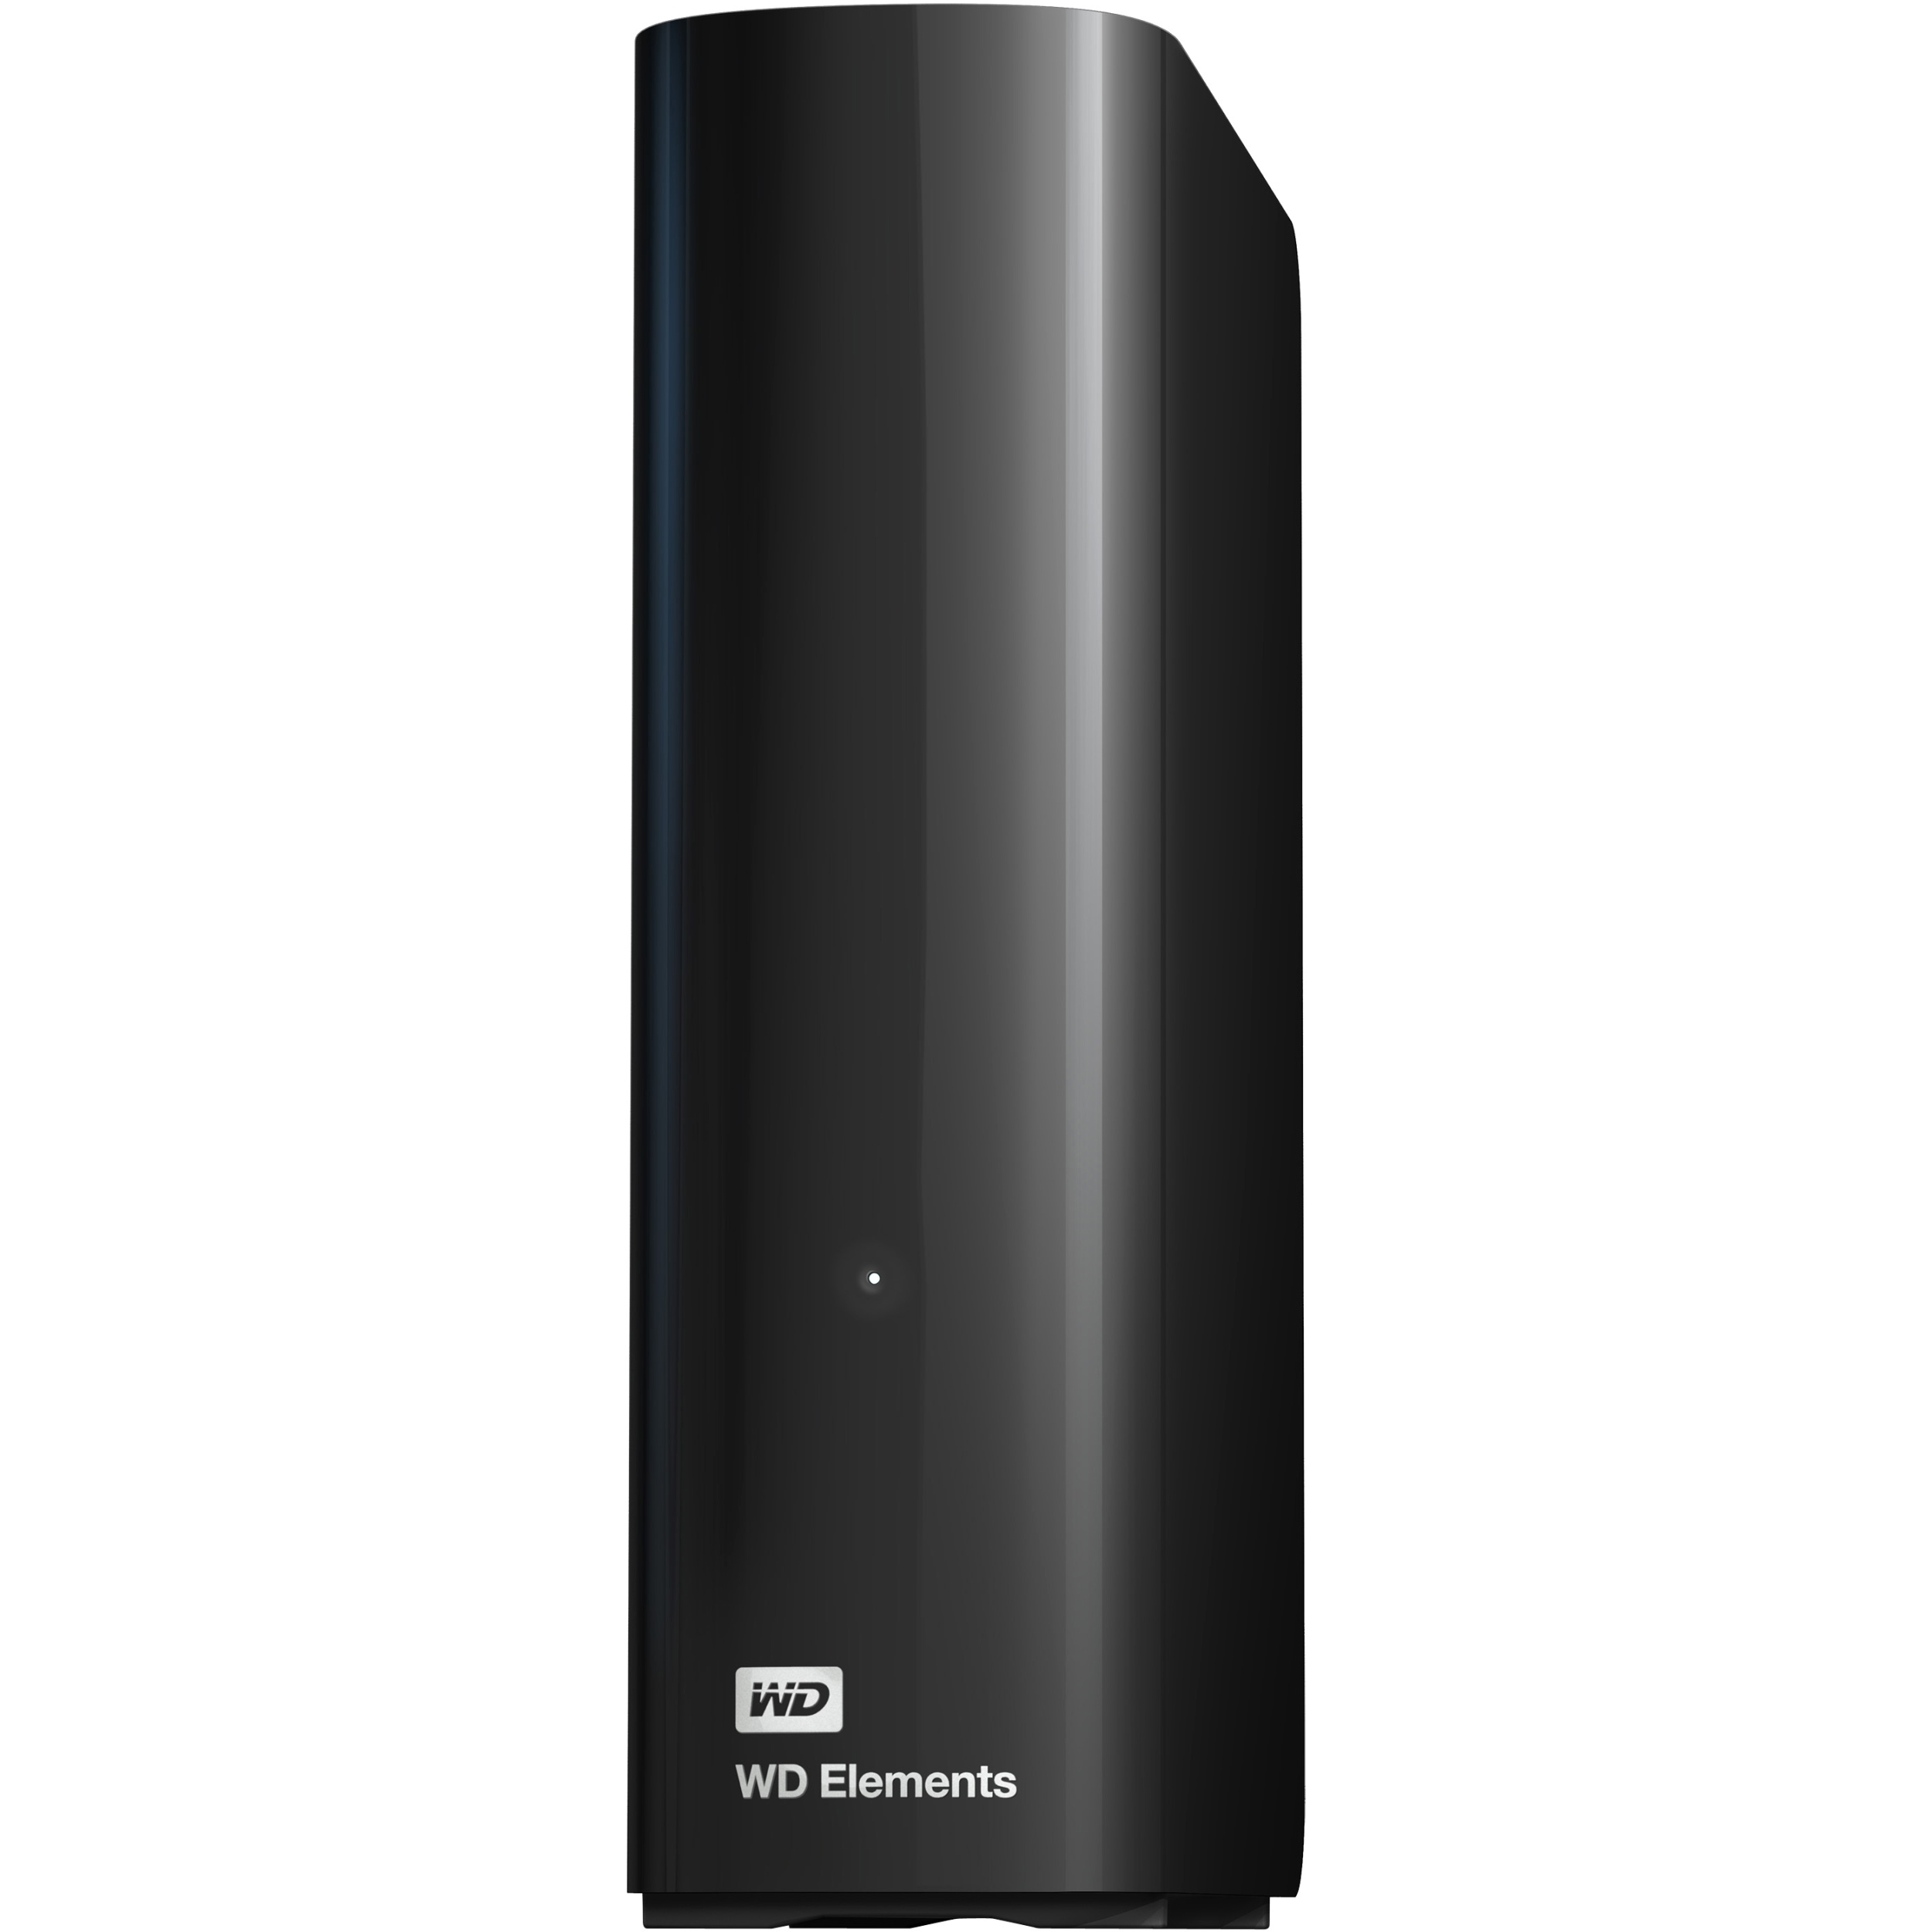 Western Digital 5TB Elements Desktop USB 3.0 Hard Drive by Western Digital